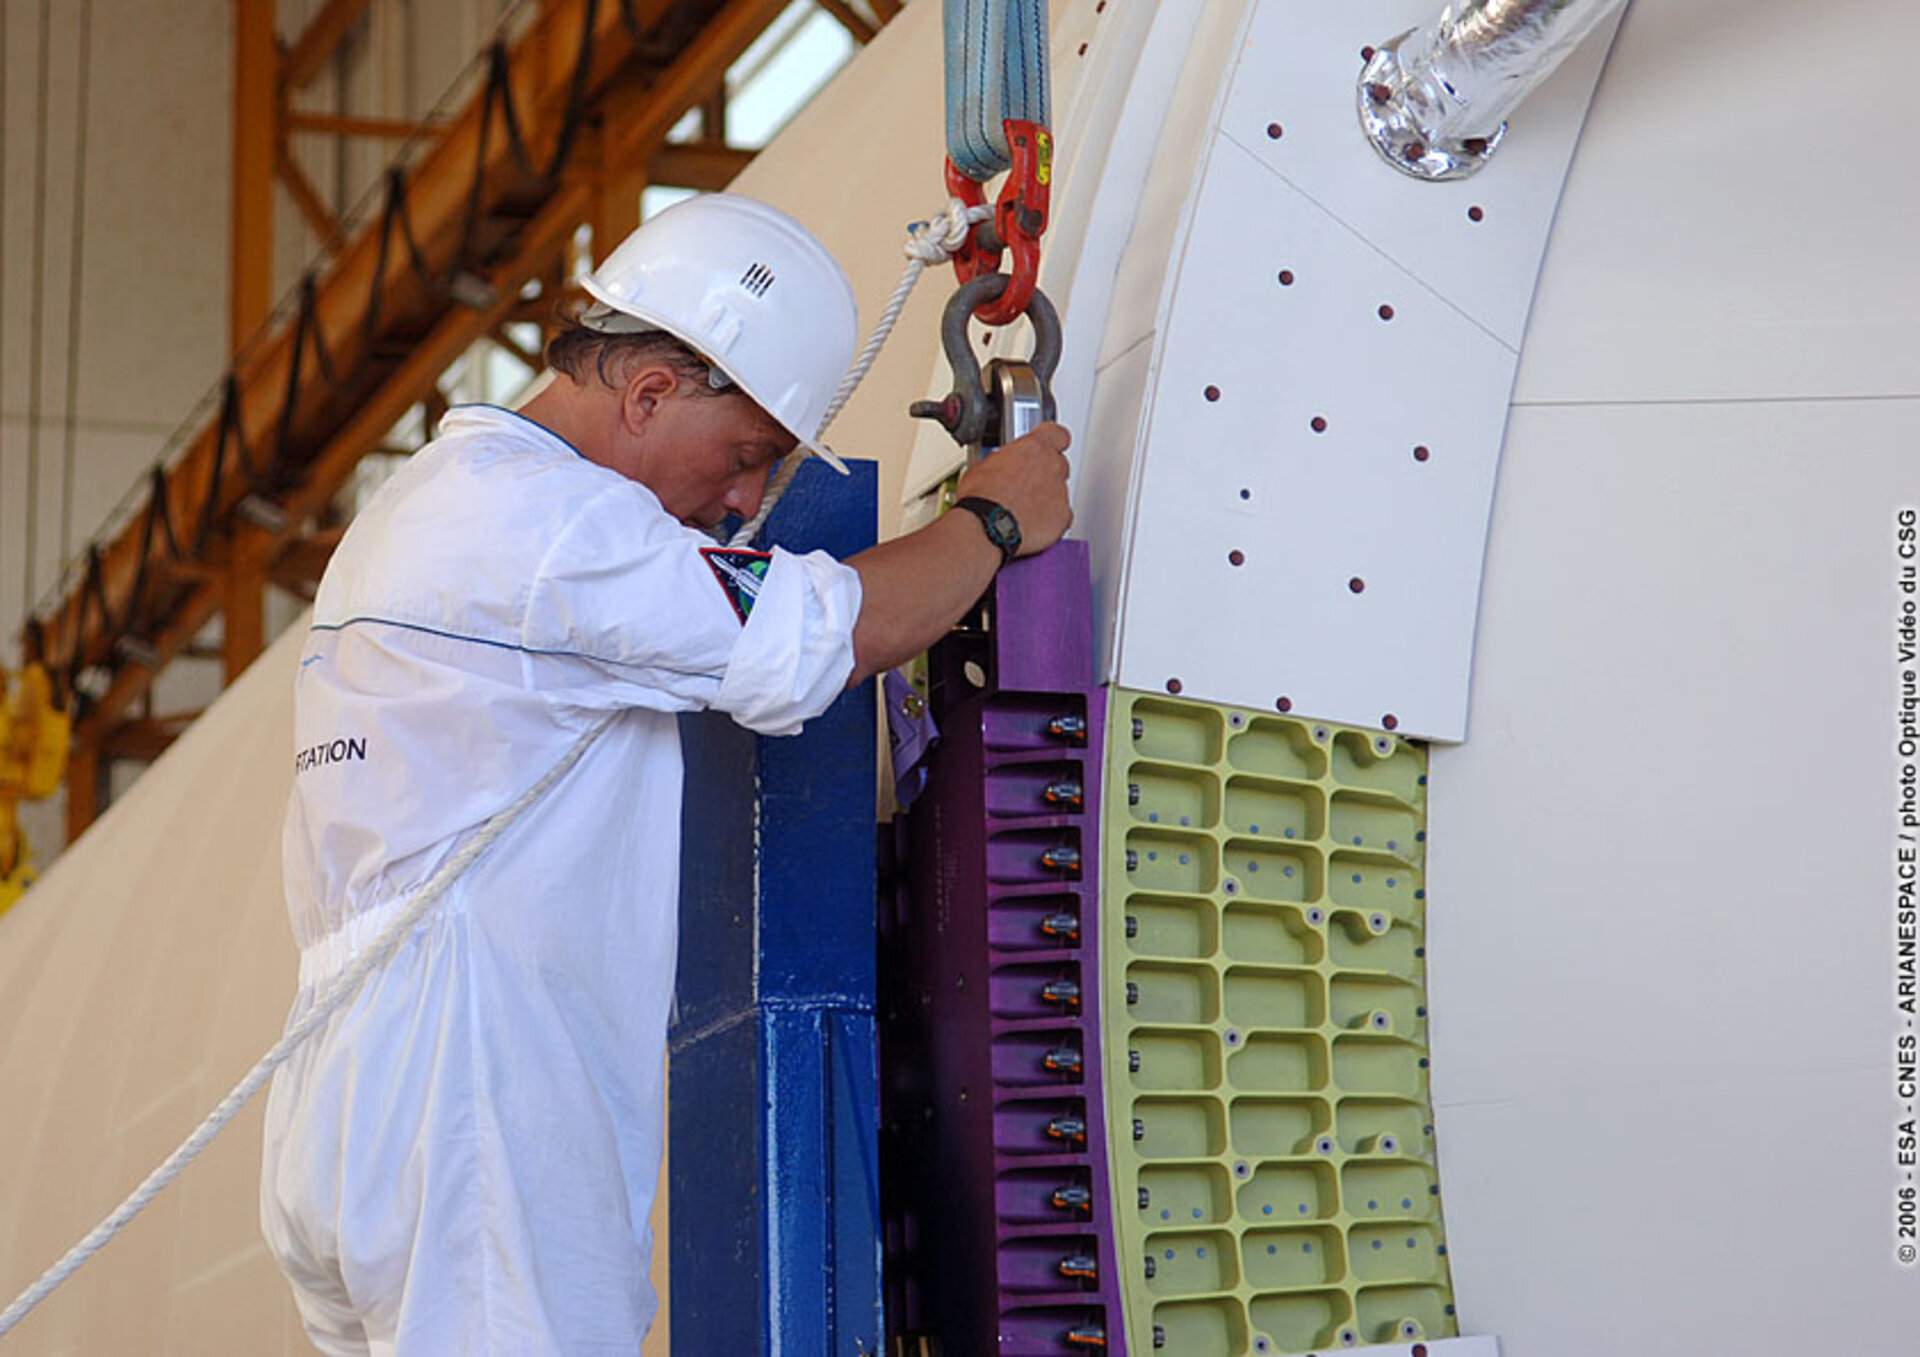 Removal of transport container from the main cryogenic stage